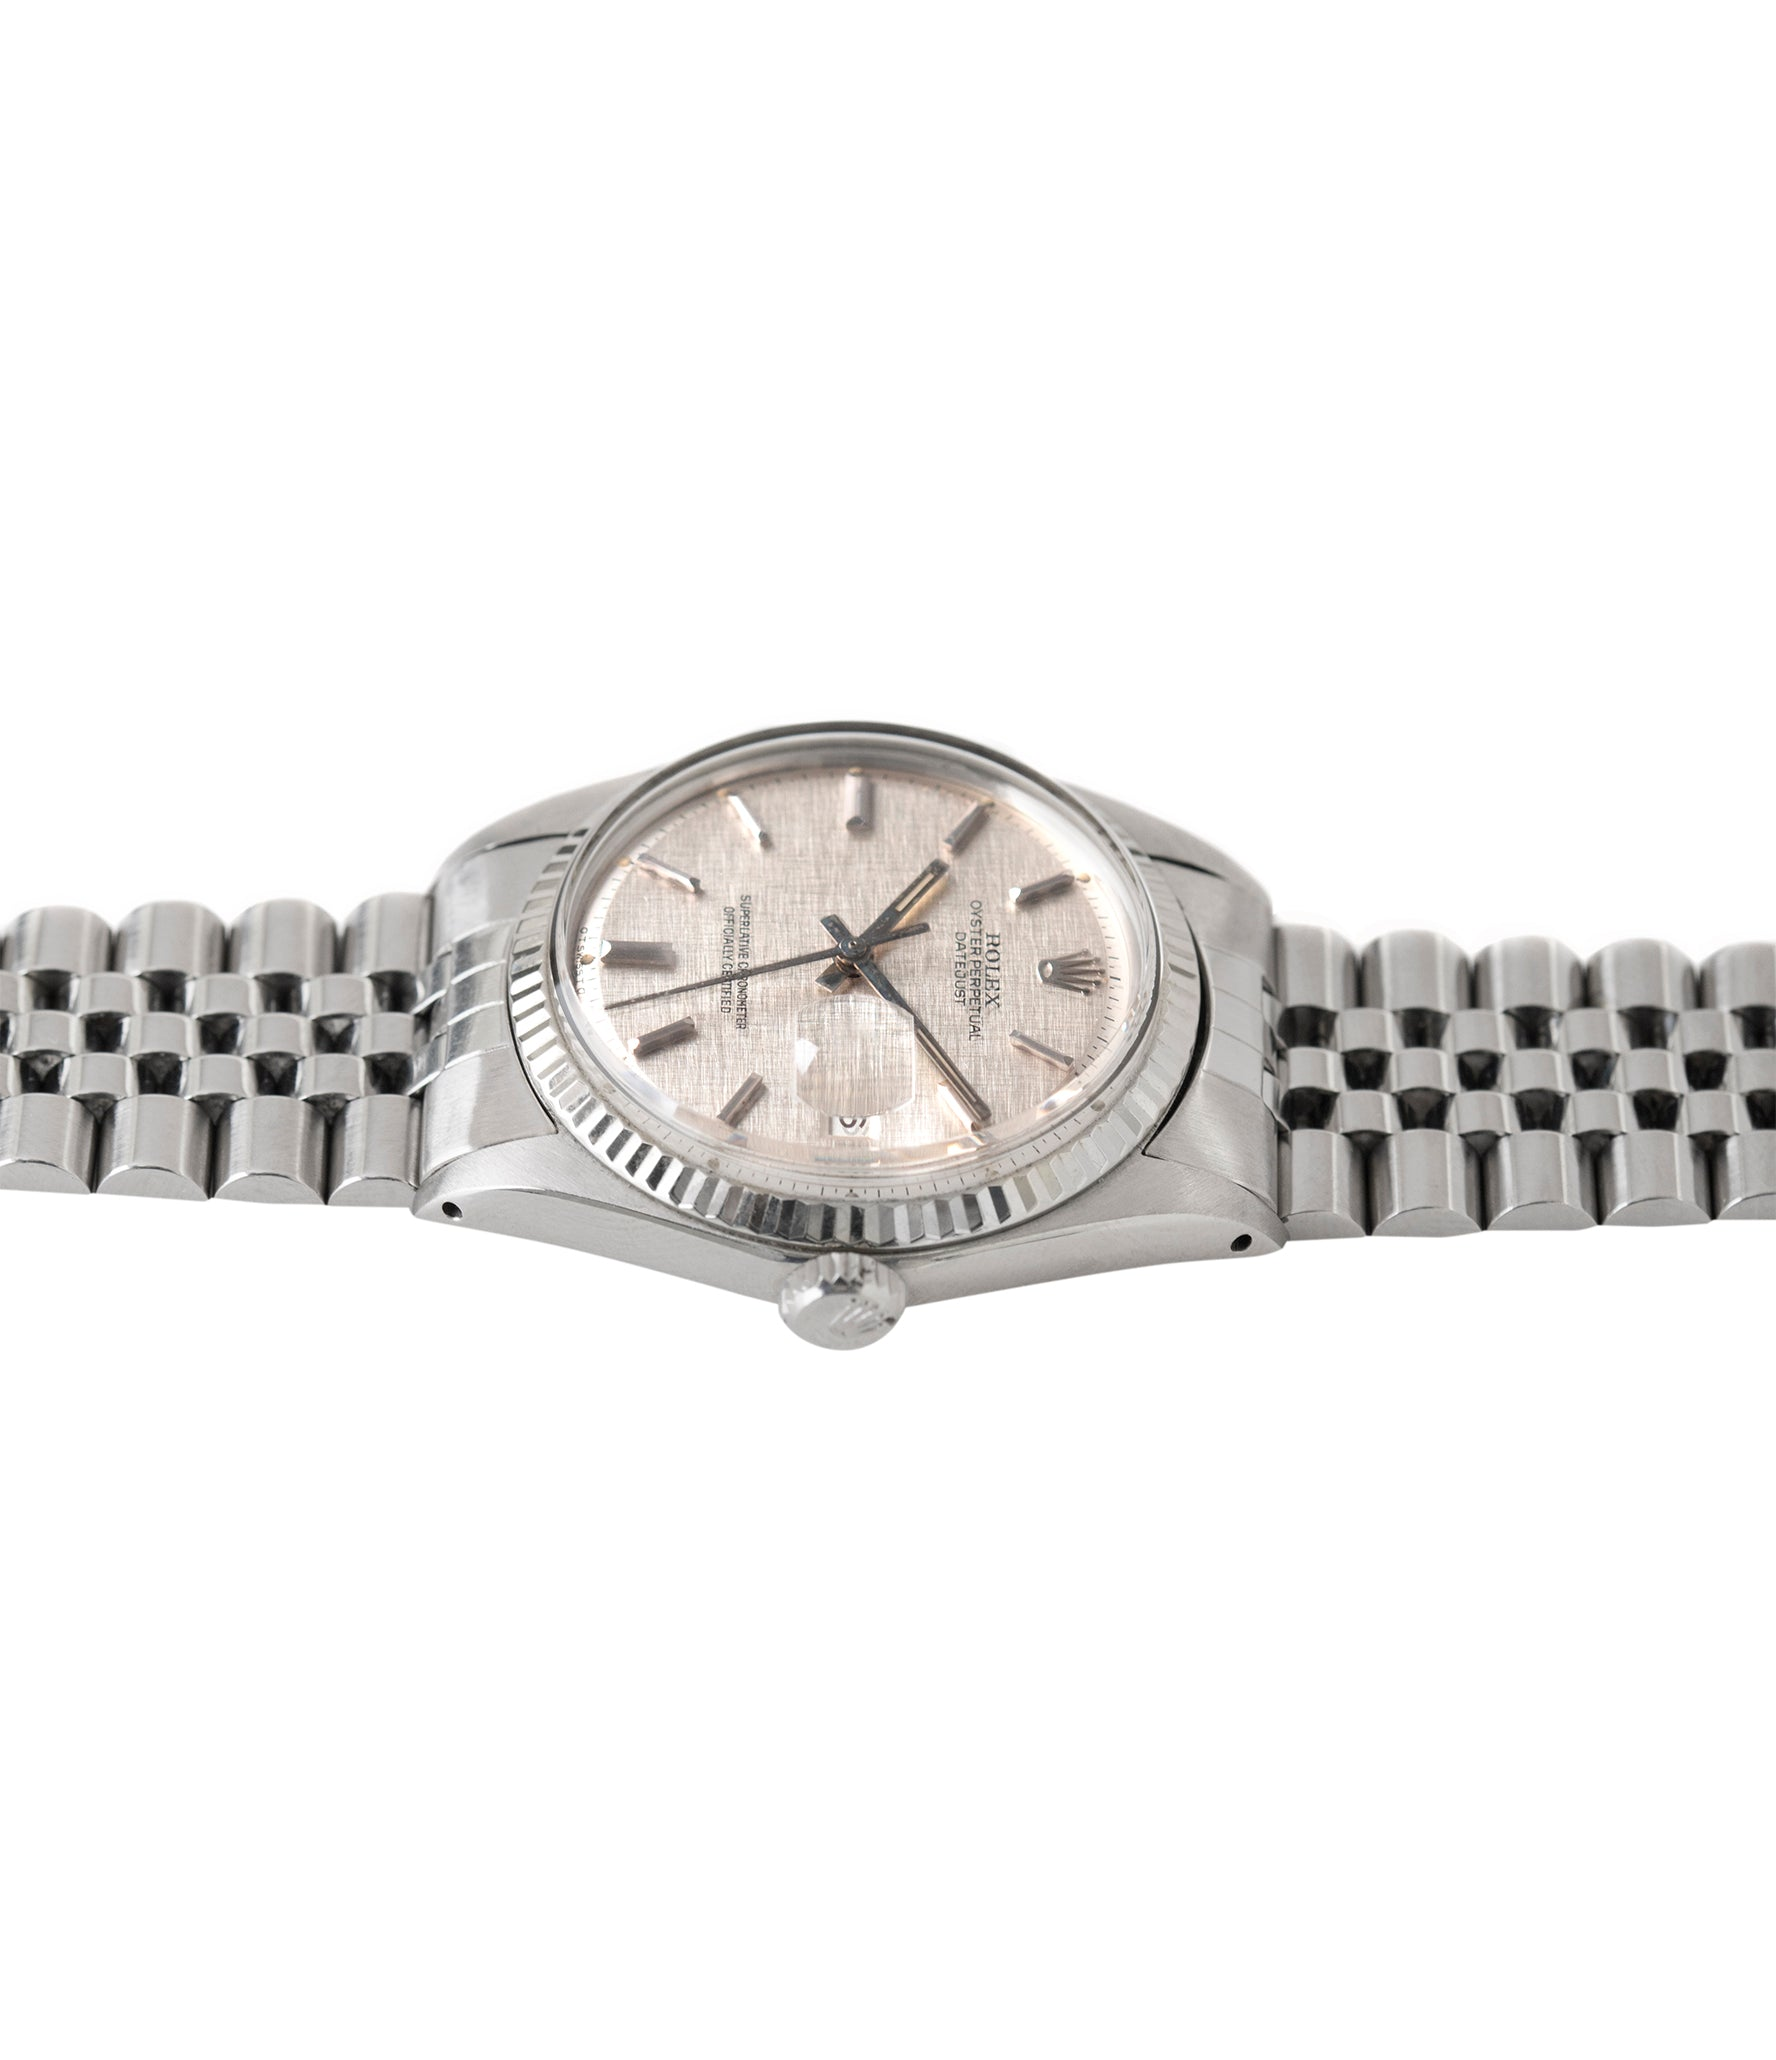 vintage Datejust 1601  Rolex linen dial Oyster Perpetual vintage automatic steel sport dress watch for sale online at A Collected Man London UK specialist rare vintage watches